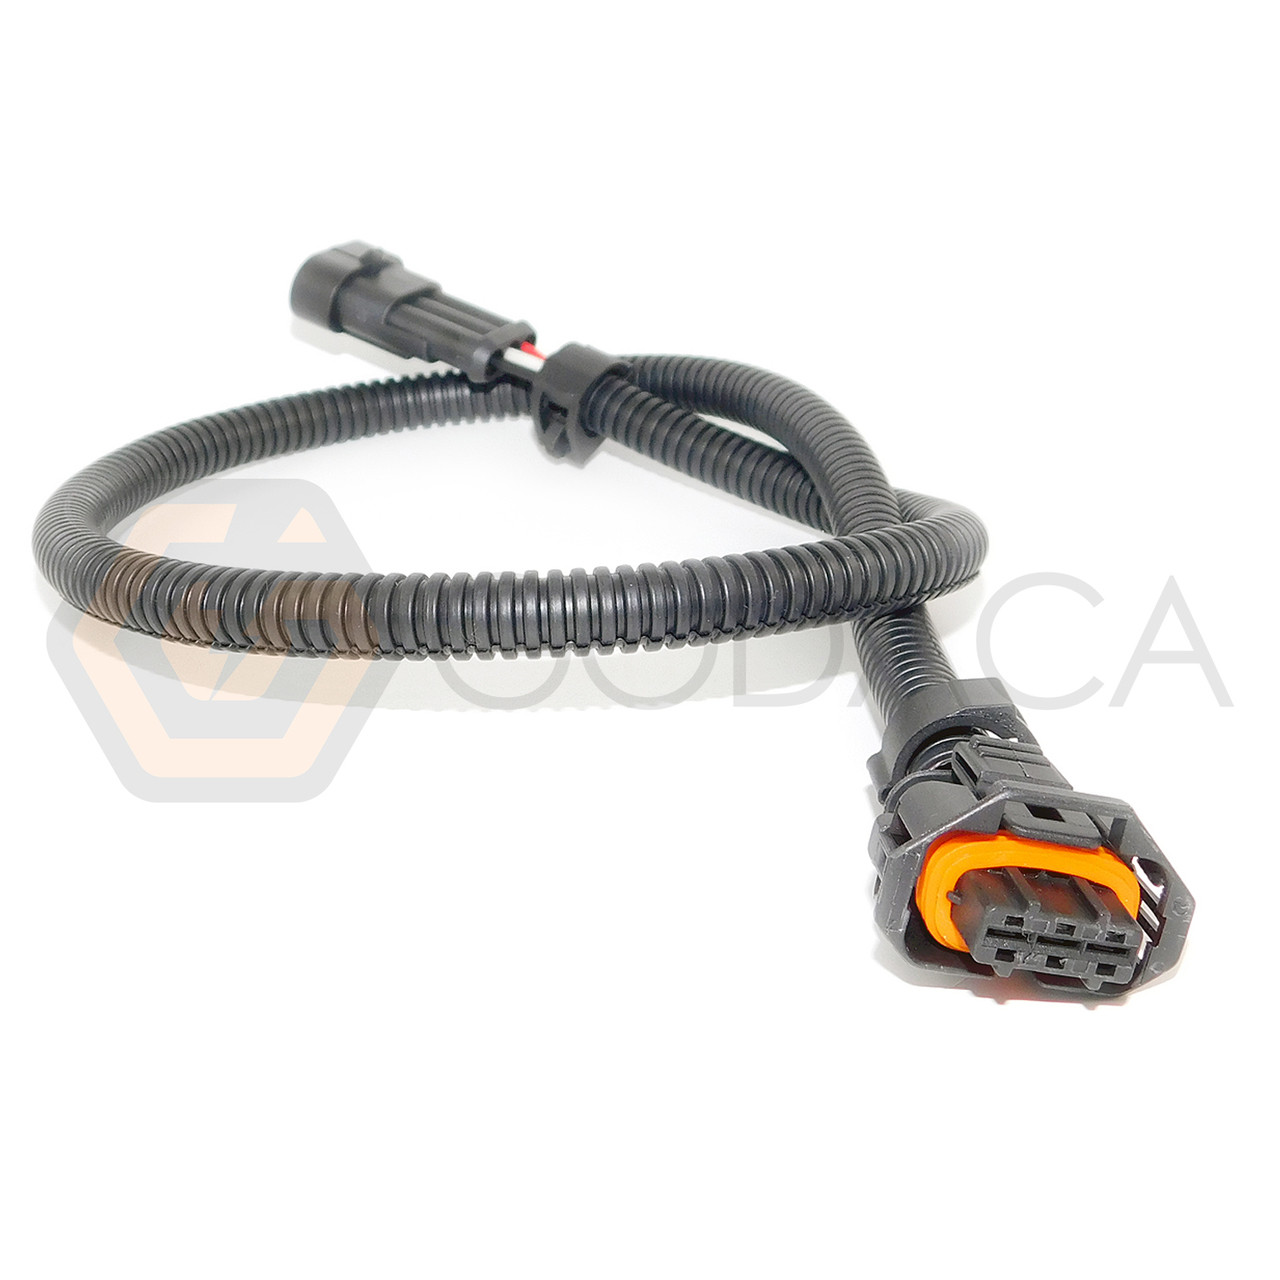 medium resolution of 1x wiring harness adapter for ls3 map sensor to ls2 ls1 map 24 godaca llc